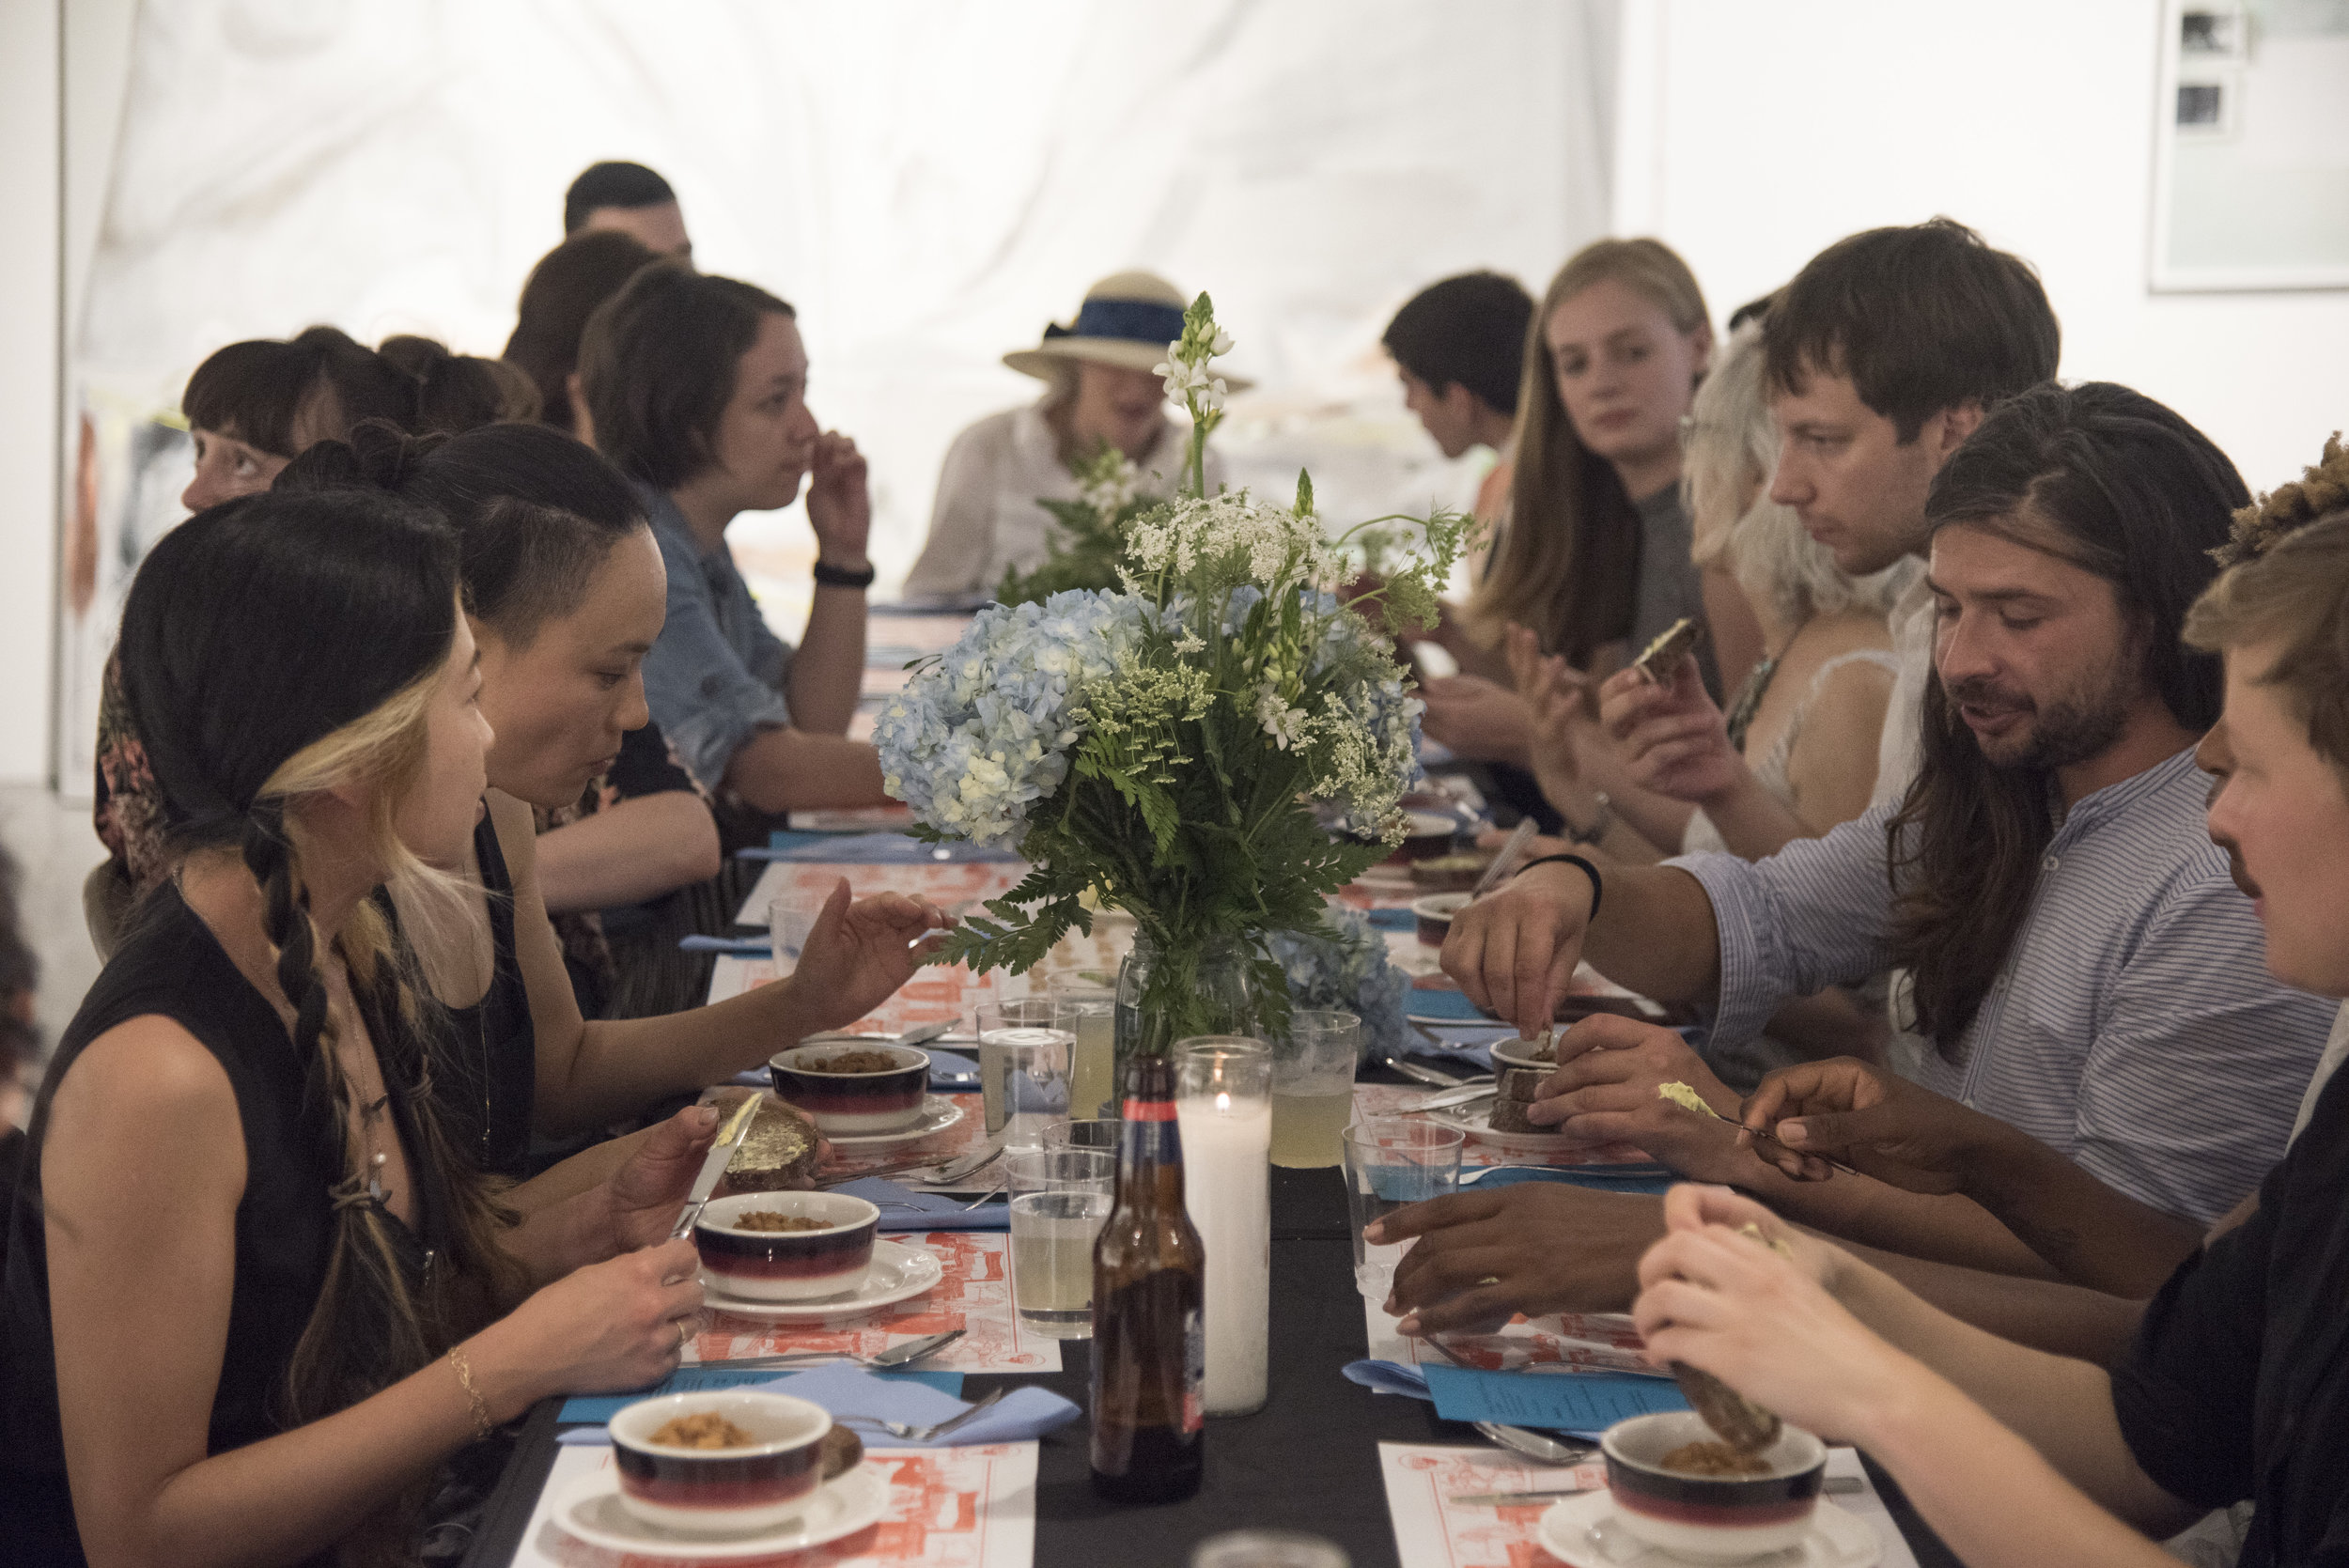 Past Live  (June 22 - July 22, 2017), the 2016/17   SHIFT  Residency  Exhibition Event:  Setting 1880-1920 / Dinner Party  by Liliana Dirks-Goodman